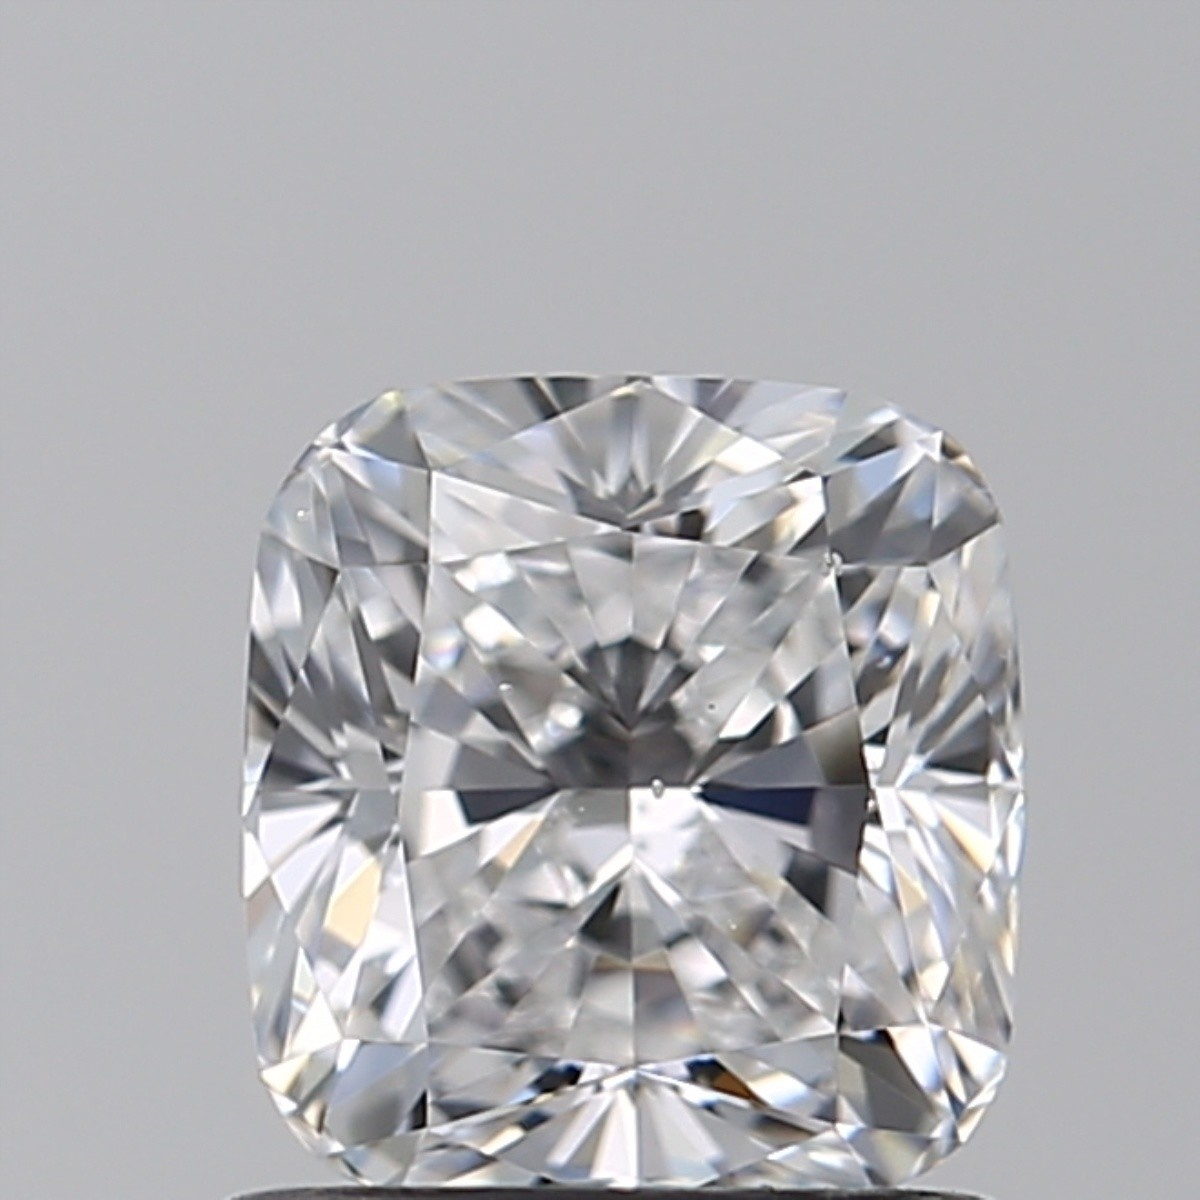 1.01 Carat Cushion Brilliant Diamond (D/VS2)